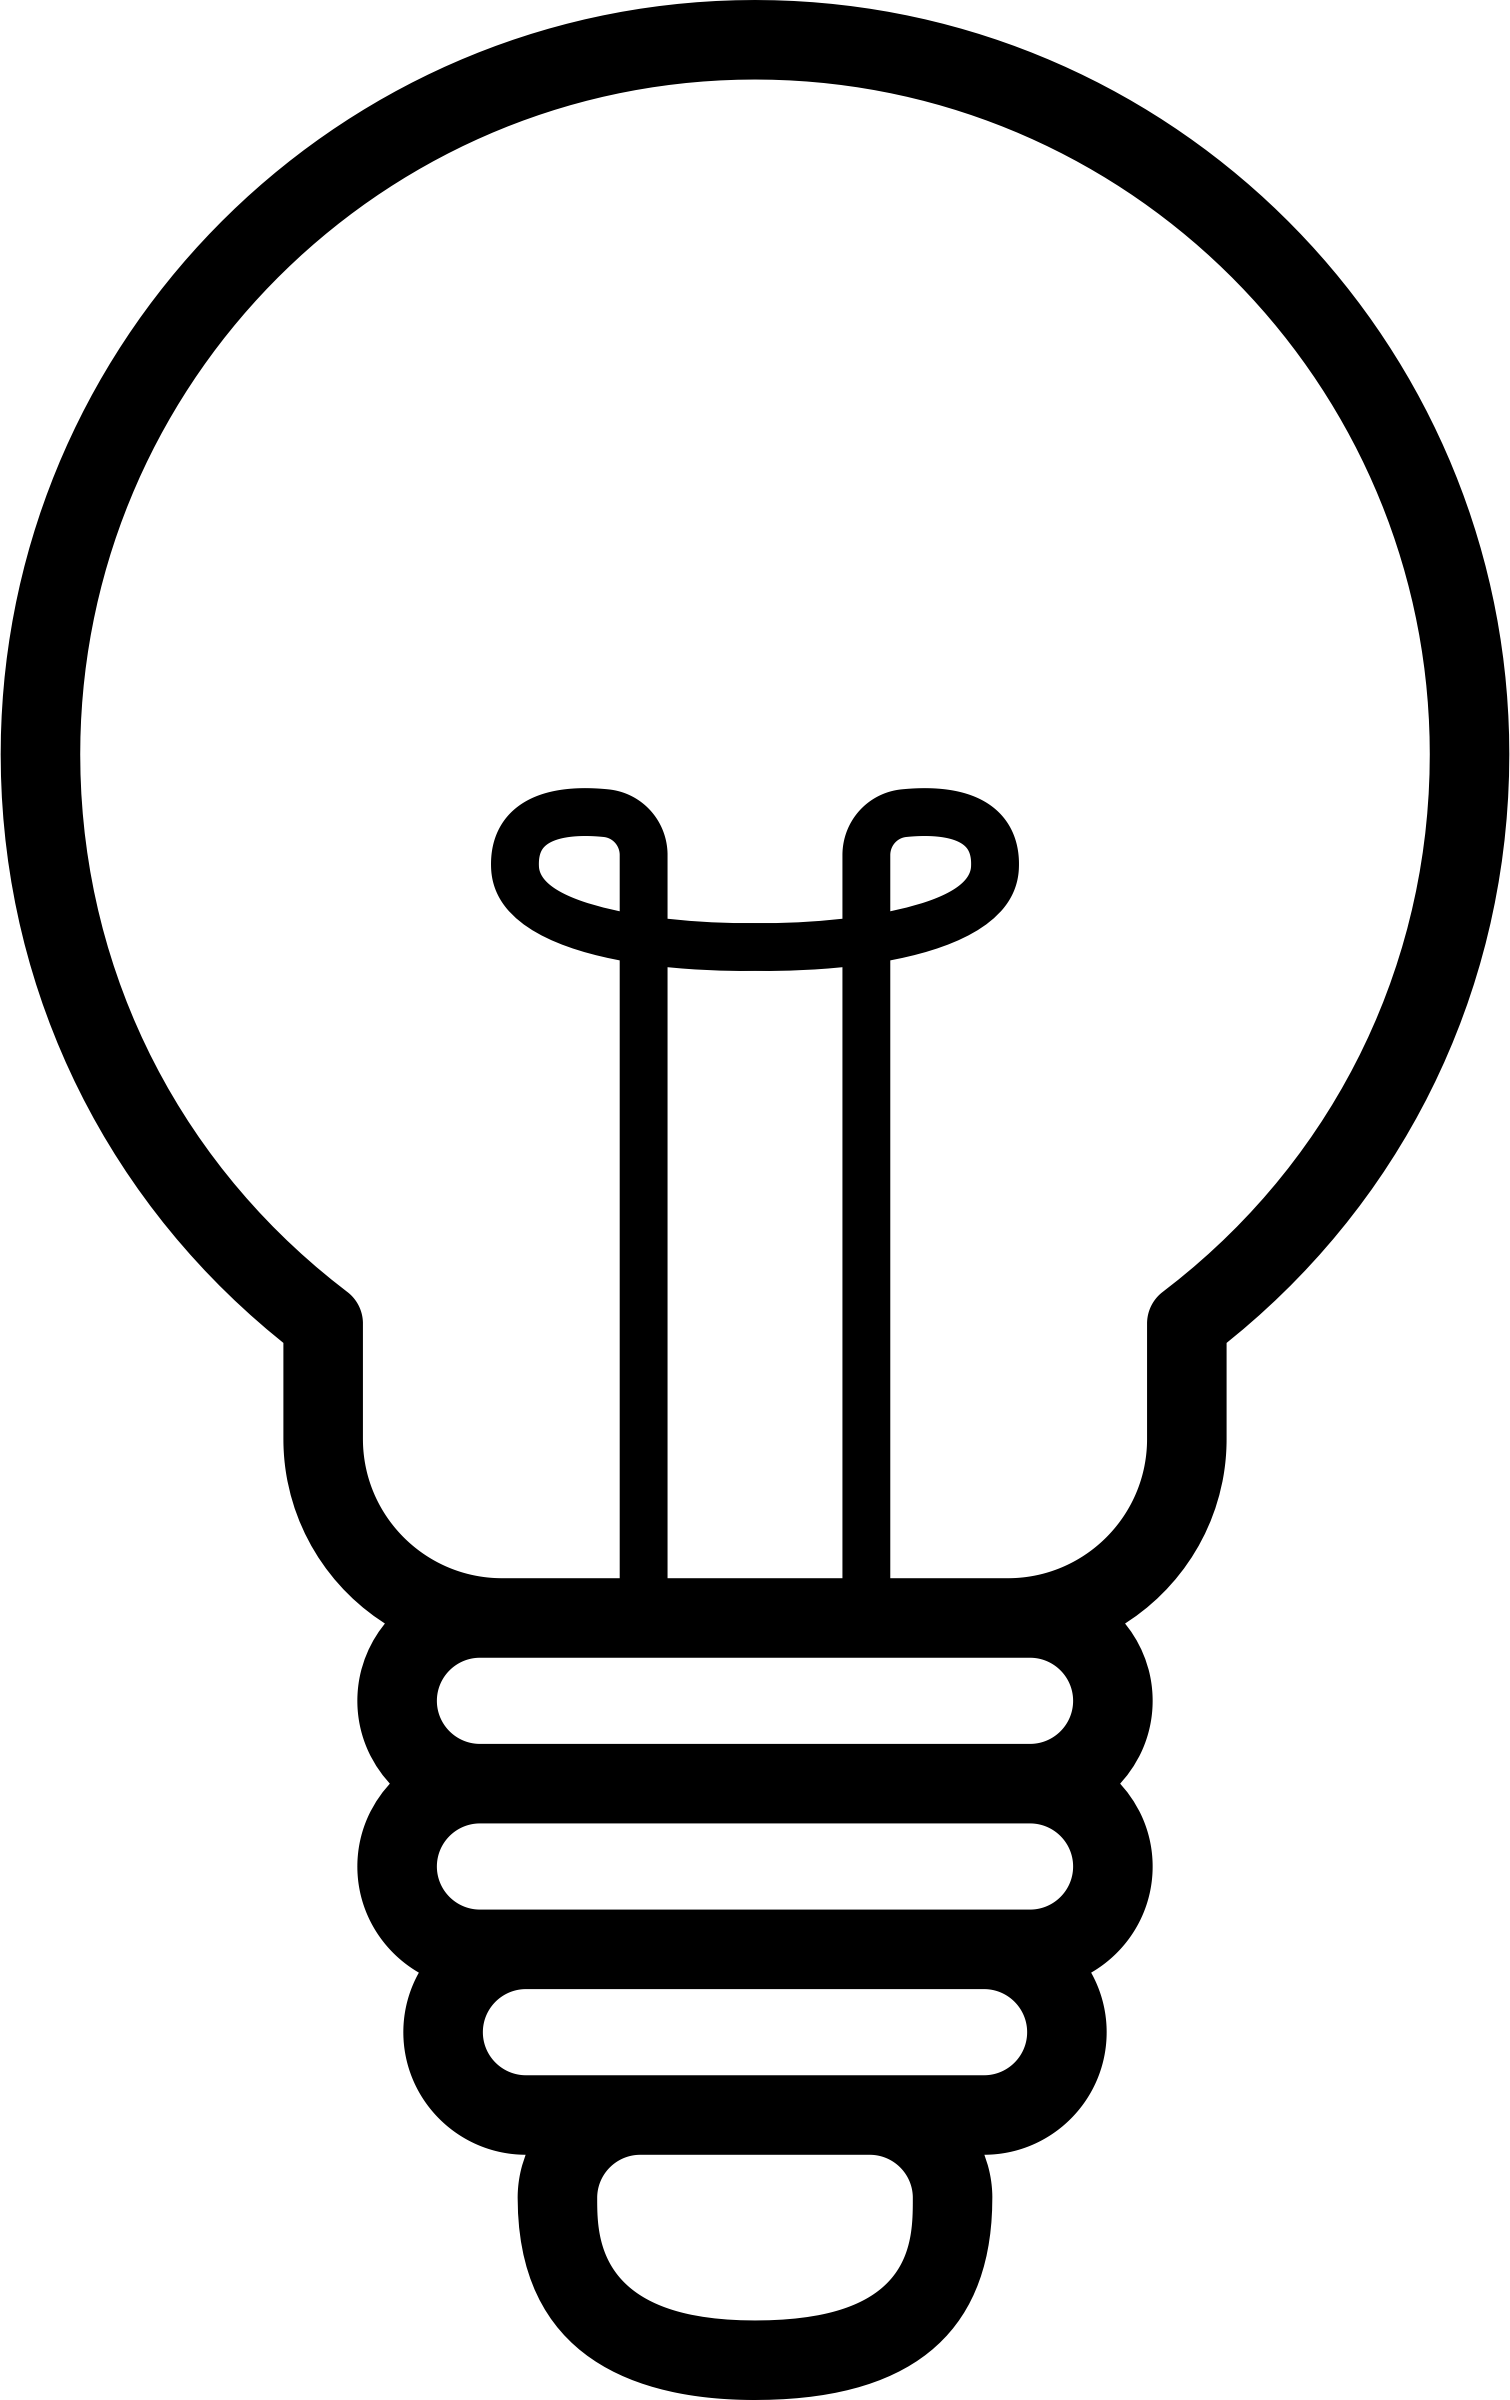 Lightbulb Clipart Growth Mindset Lightbulb Growth Mindset